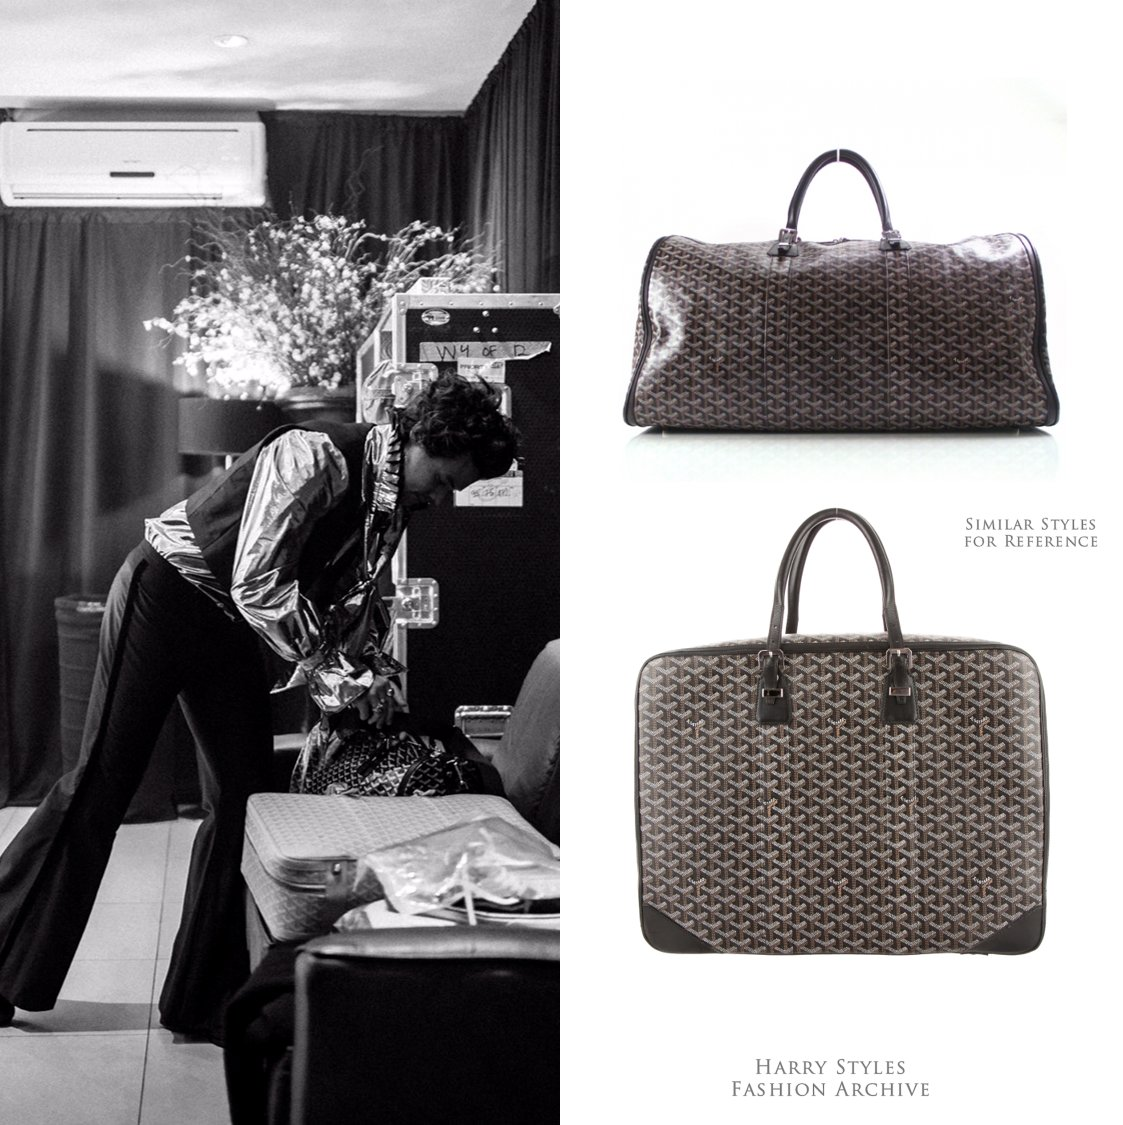 Goyard Bags Are Only Available In S So Limited Info On Prices Styles Online We Ll Update When Know More Pic Twitter Ntruomj0ov